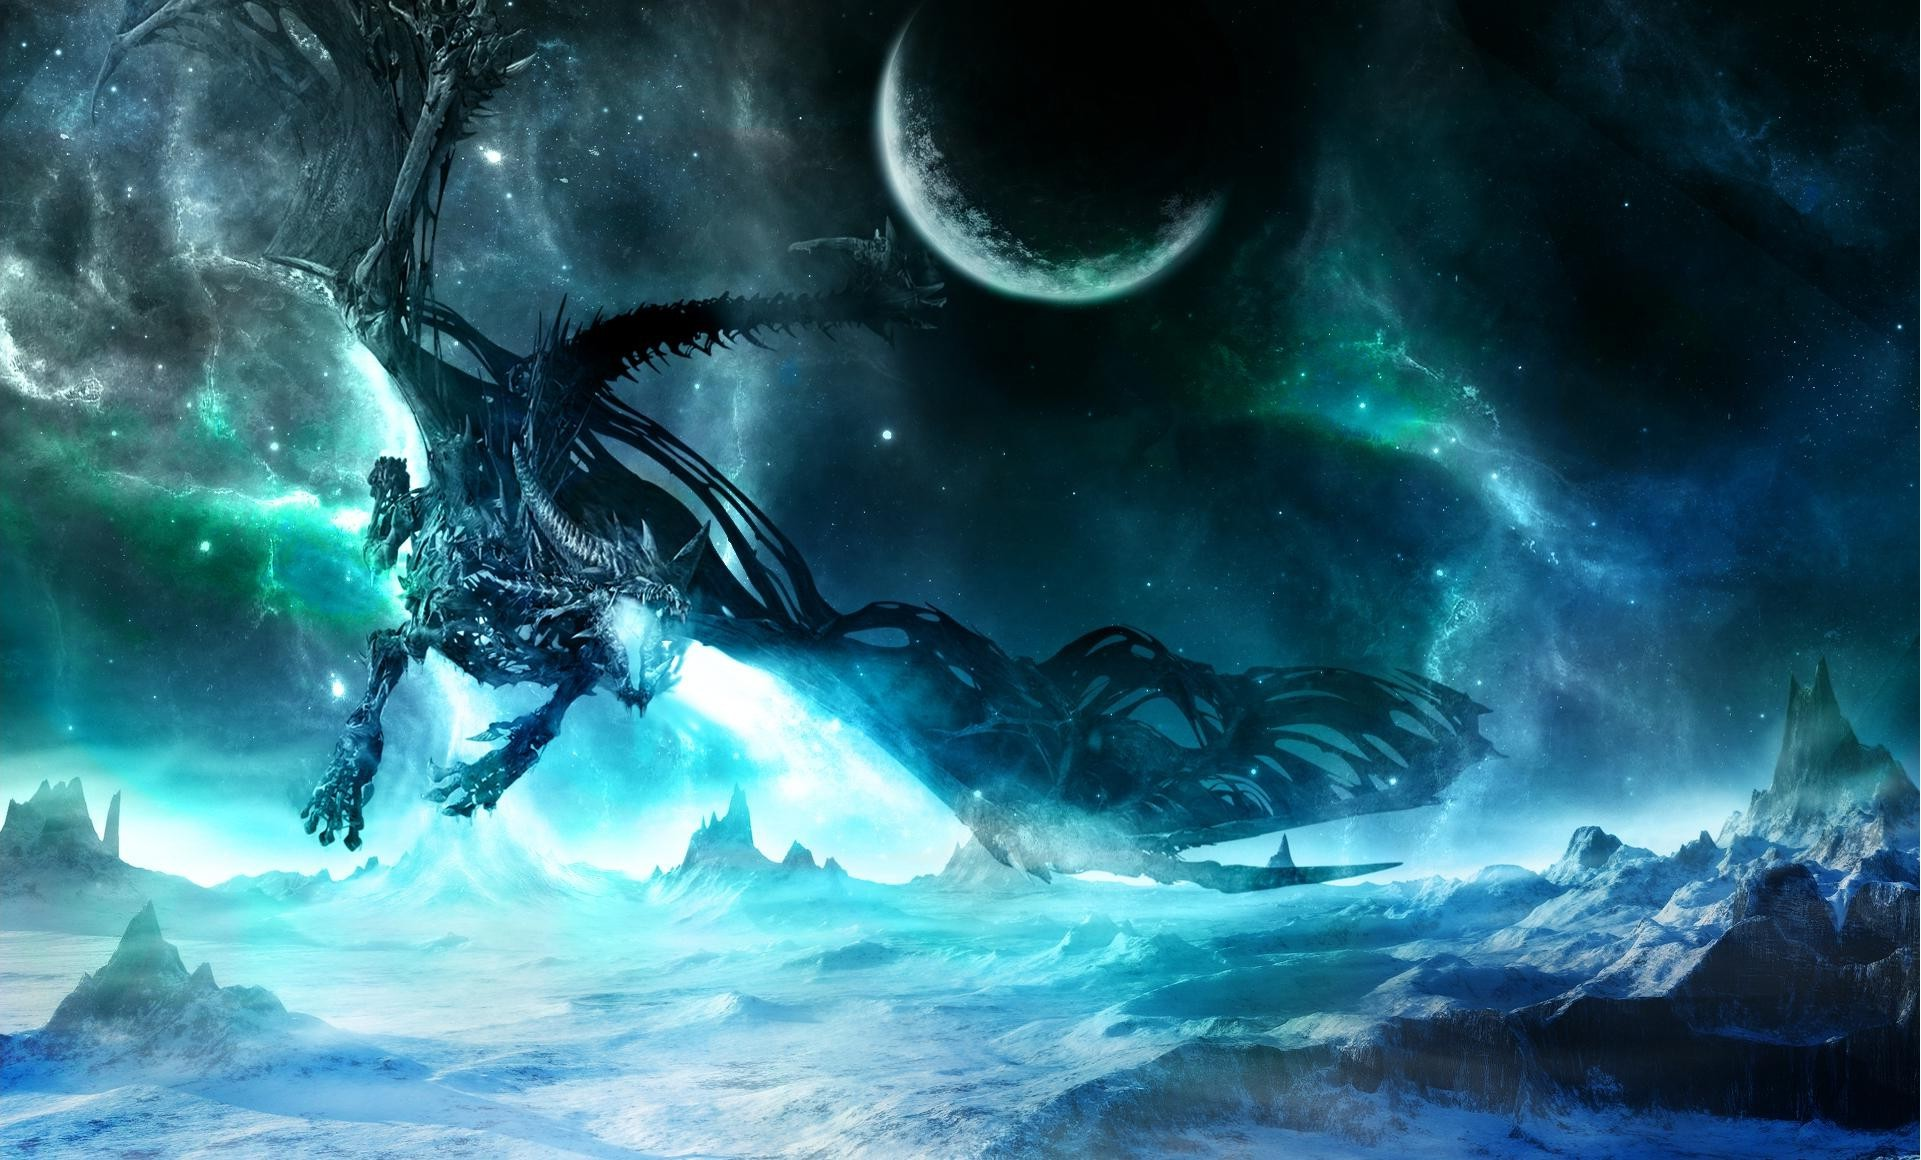 Cool Space Iphone Wallpaper Dragon Wallpapers For Desktop 61 Images